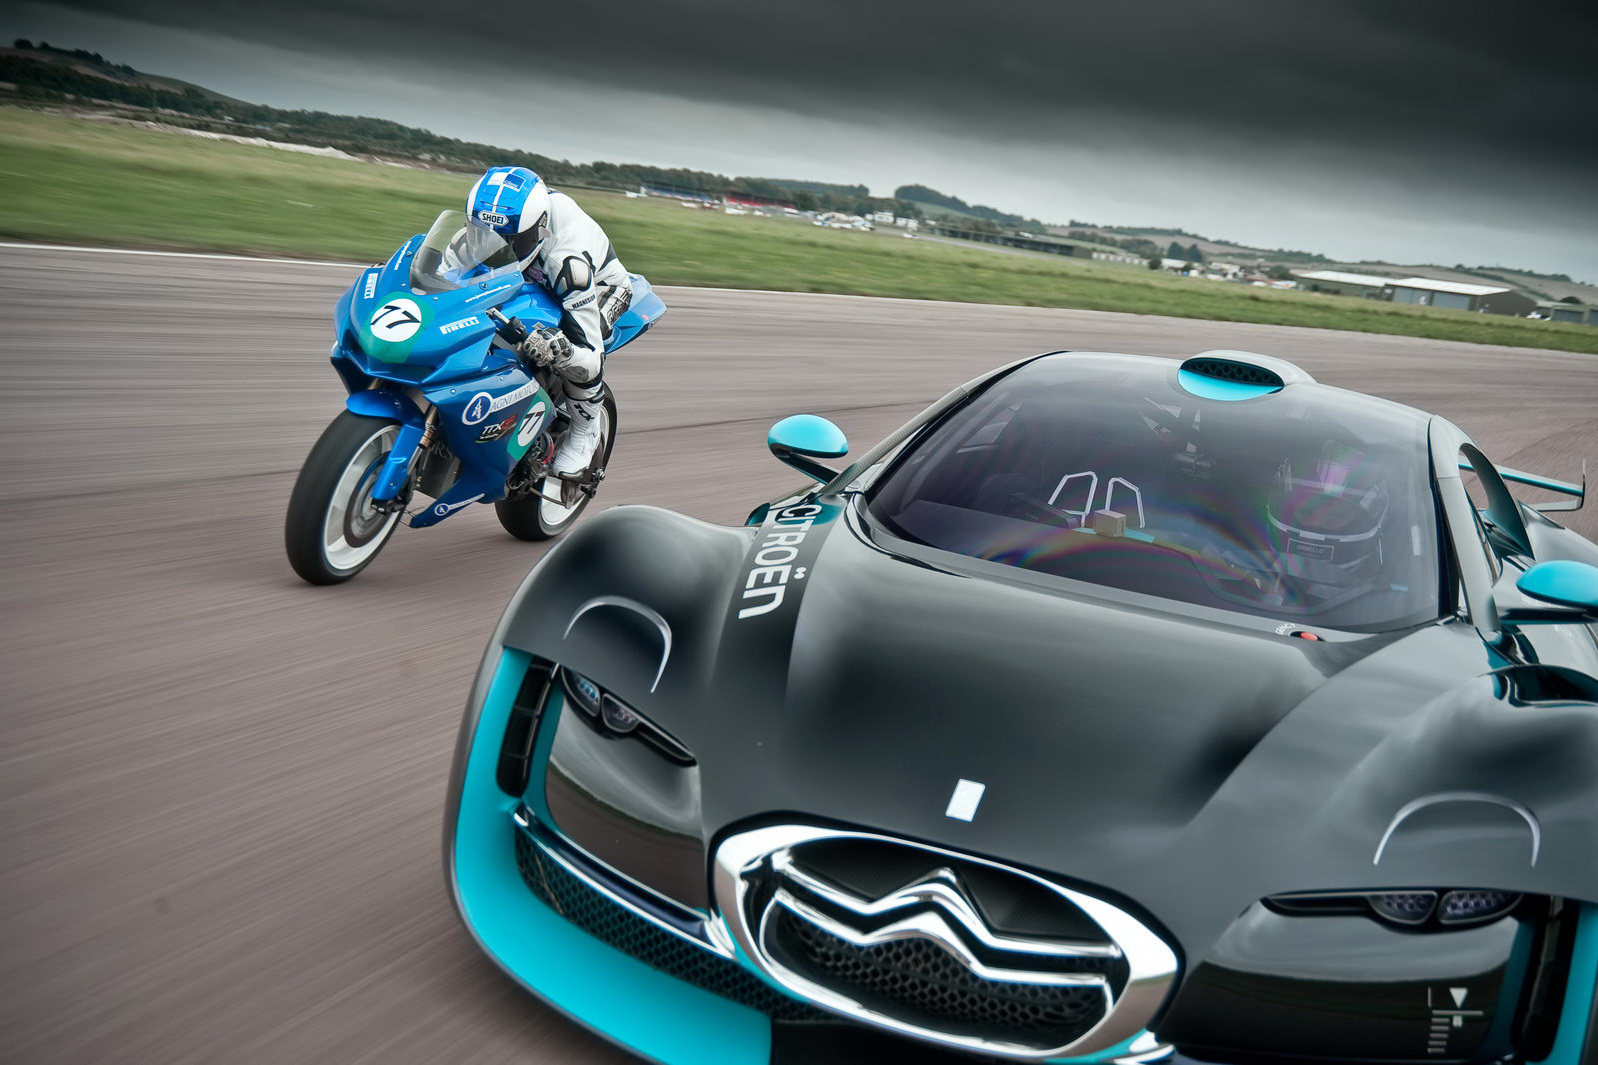 cars vs motorcycles Motorcycle vs car accidents motorcyclists are susceptible to sustaining serious injuries when involved in any collision involving a motorcycle and a passenger vehicle.